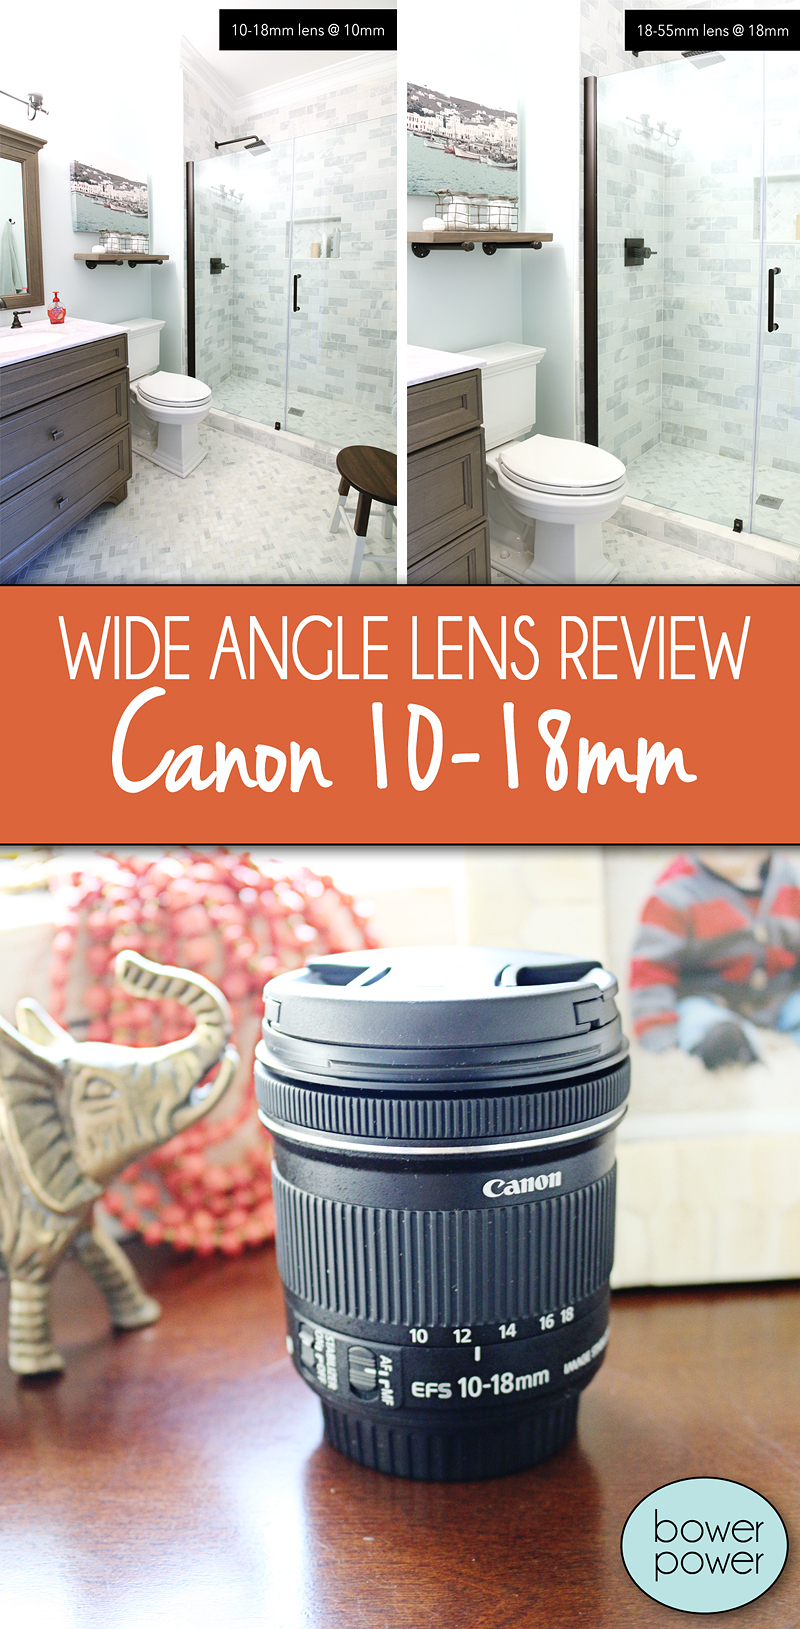 10 18mm Lens Review (Itu0027s Awesome For Wide Angle Interior Photography!)    Bower Power